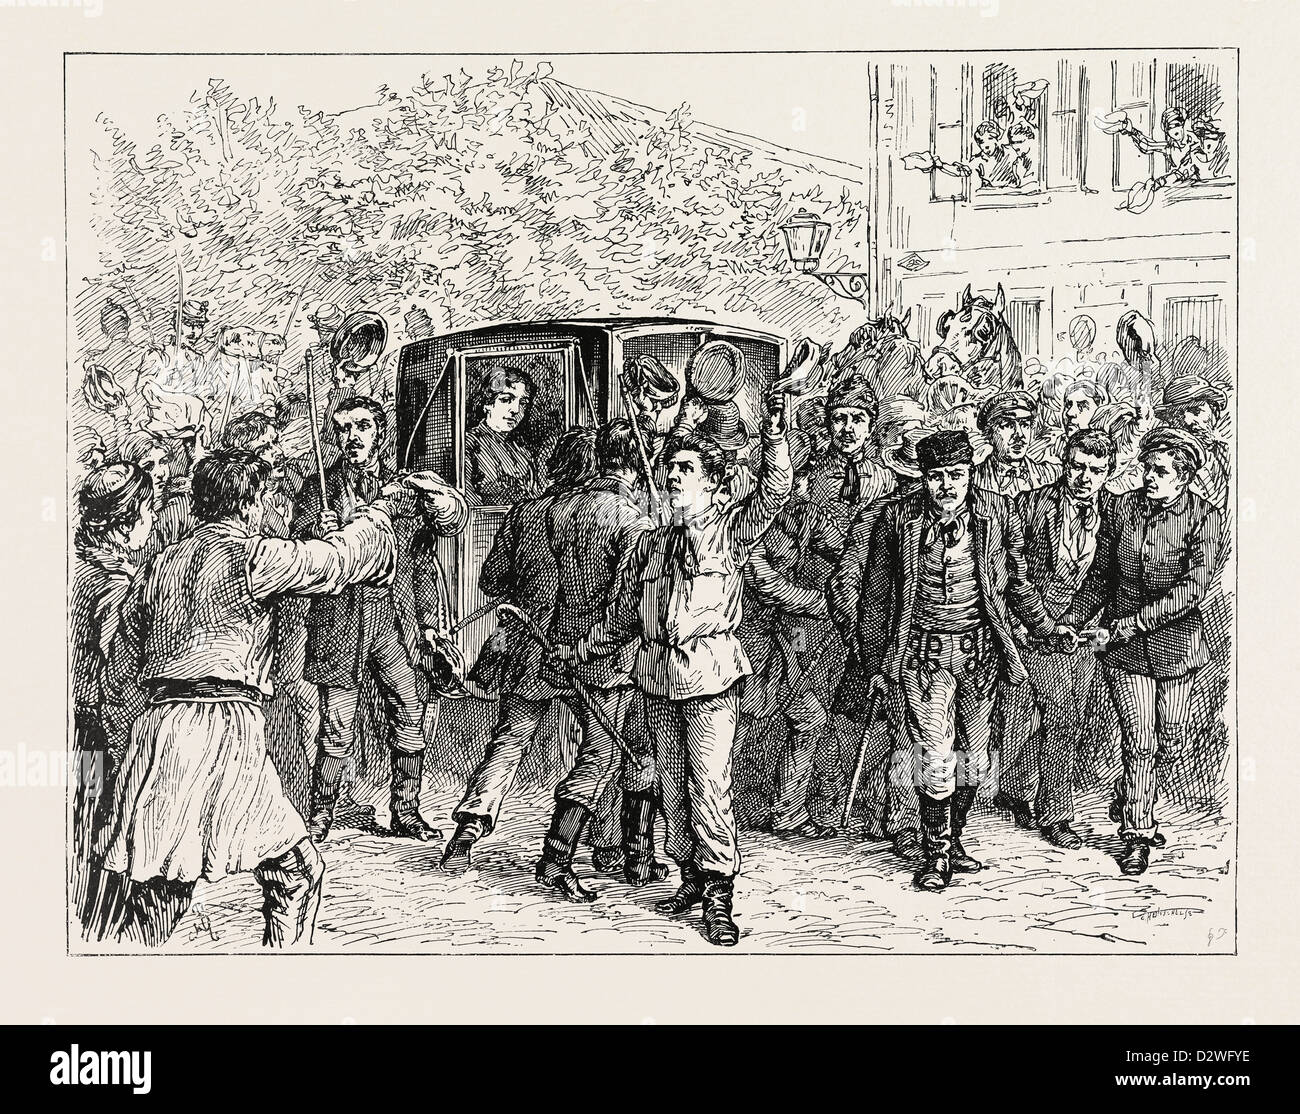 THE EXPULSION OF QUEEN NATALIE FROM SERBIA: THE STUDENTS RESCUING THE QUEEN FROM THE GENDARMES. - Stock Image